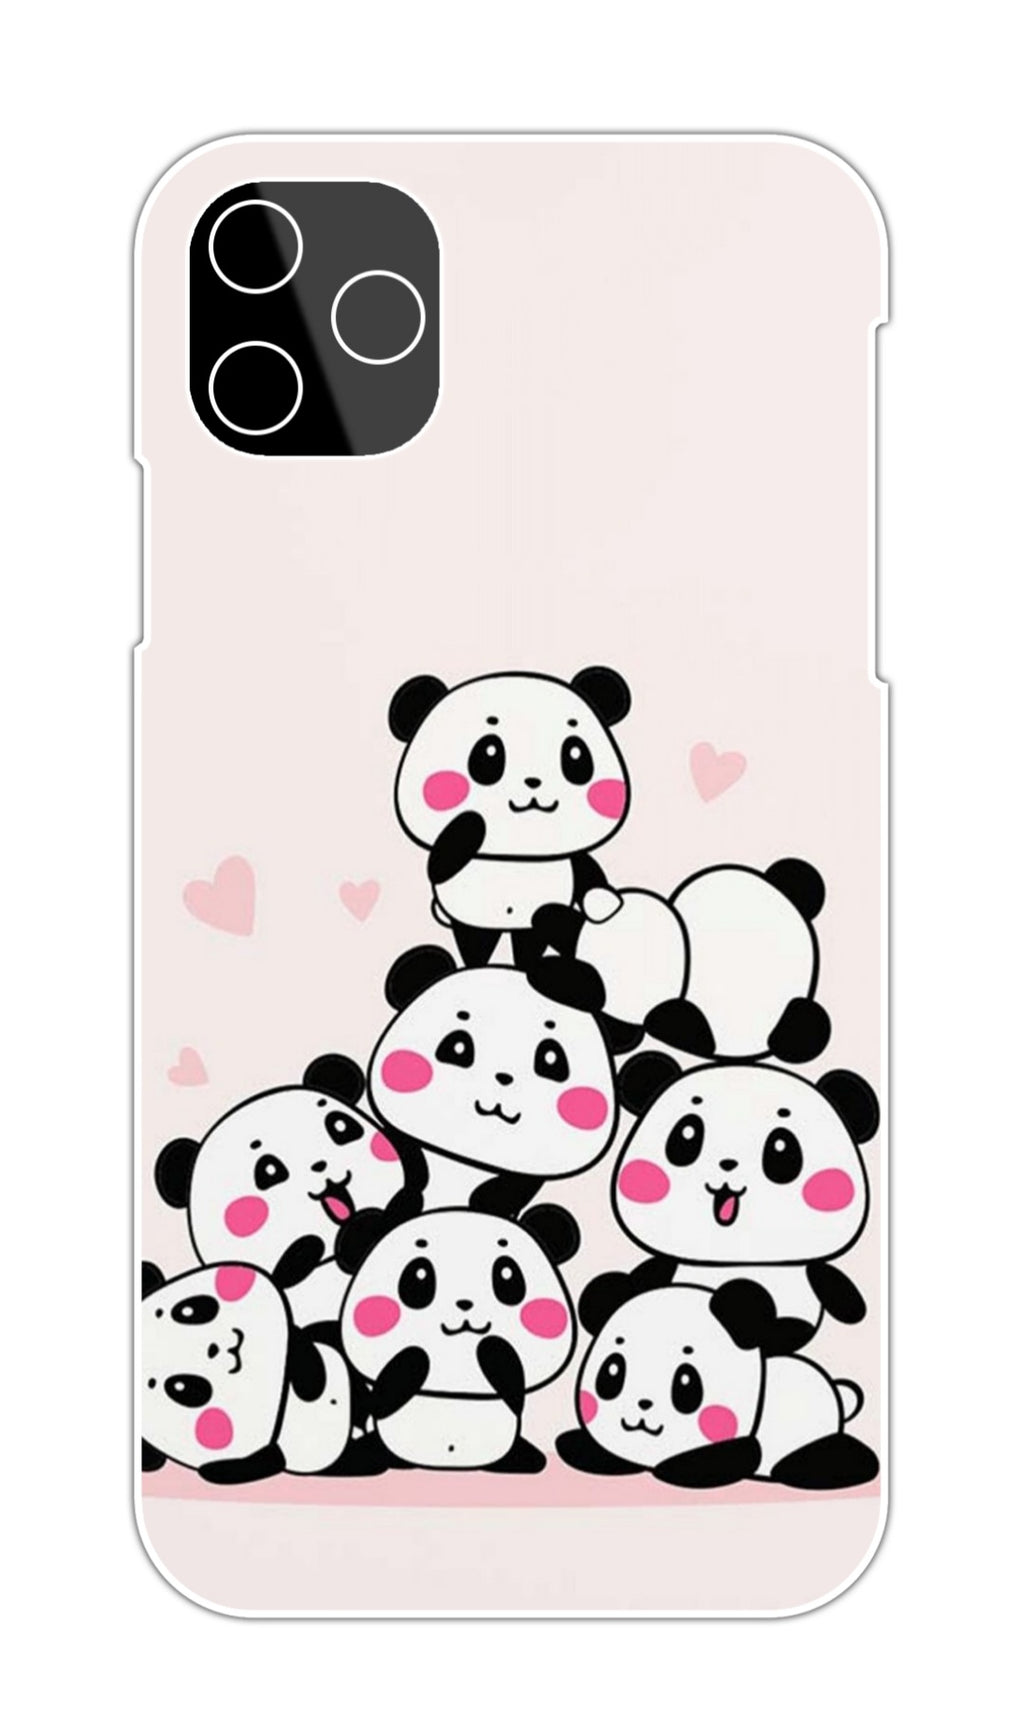 CUTE SMALL PANDAS CASE